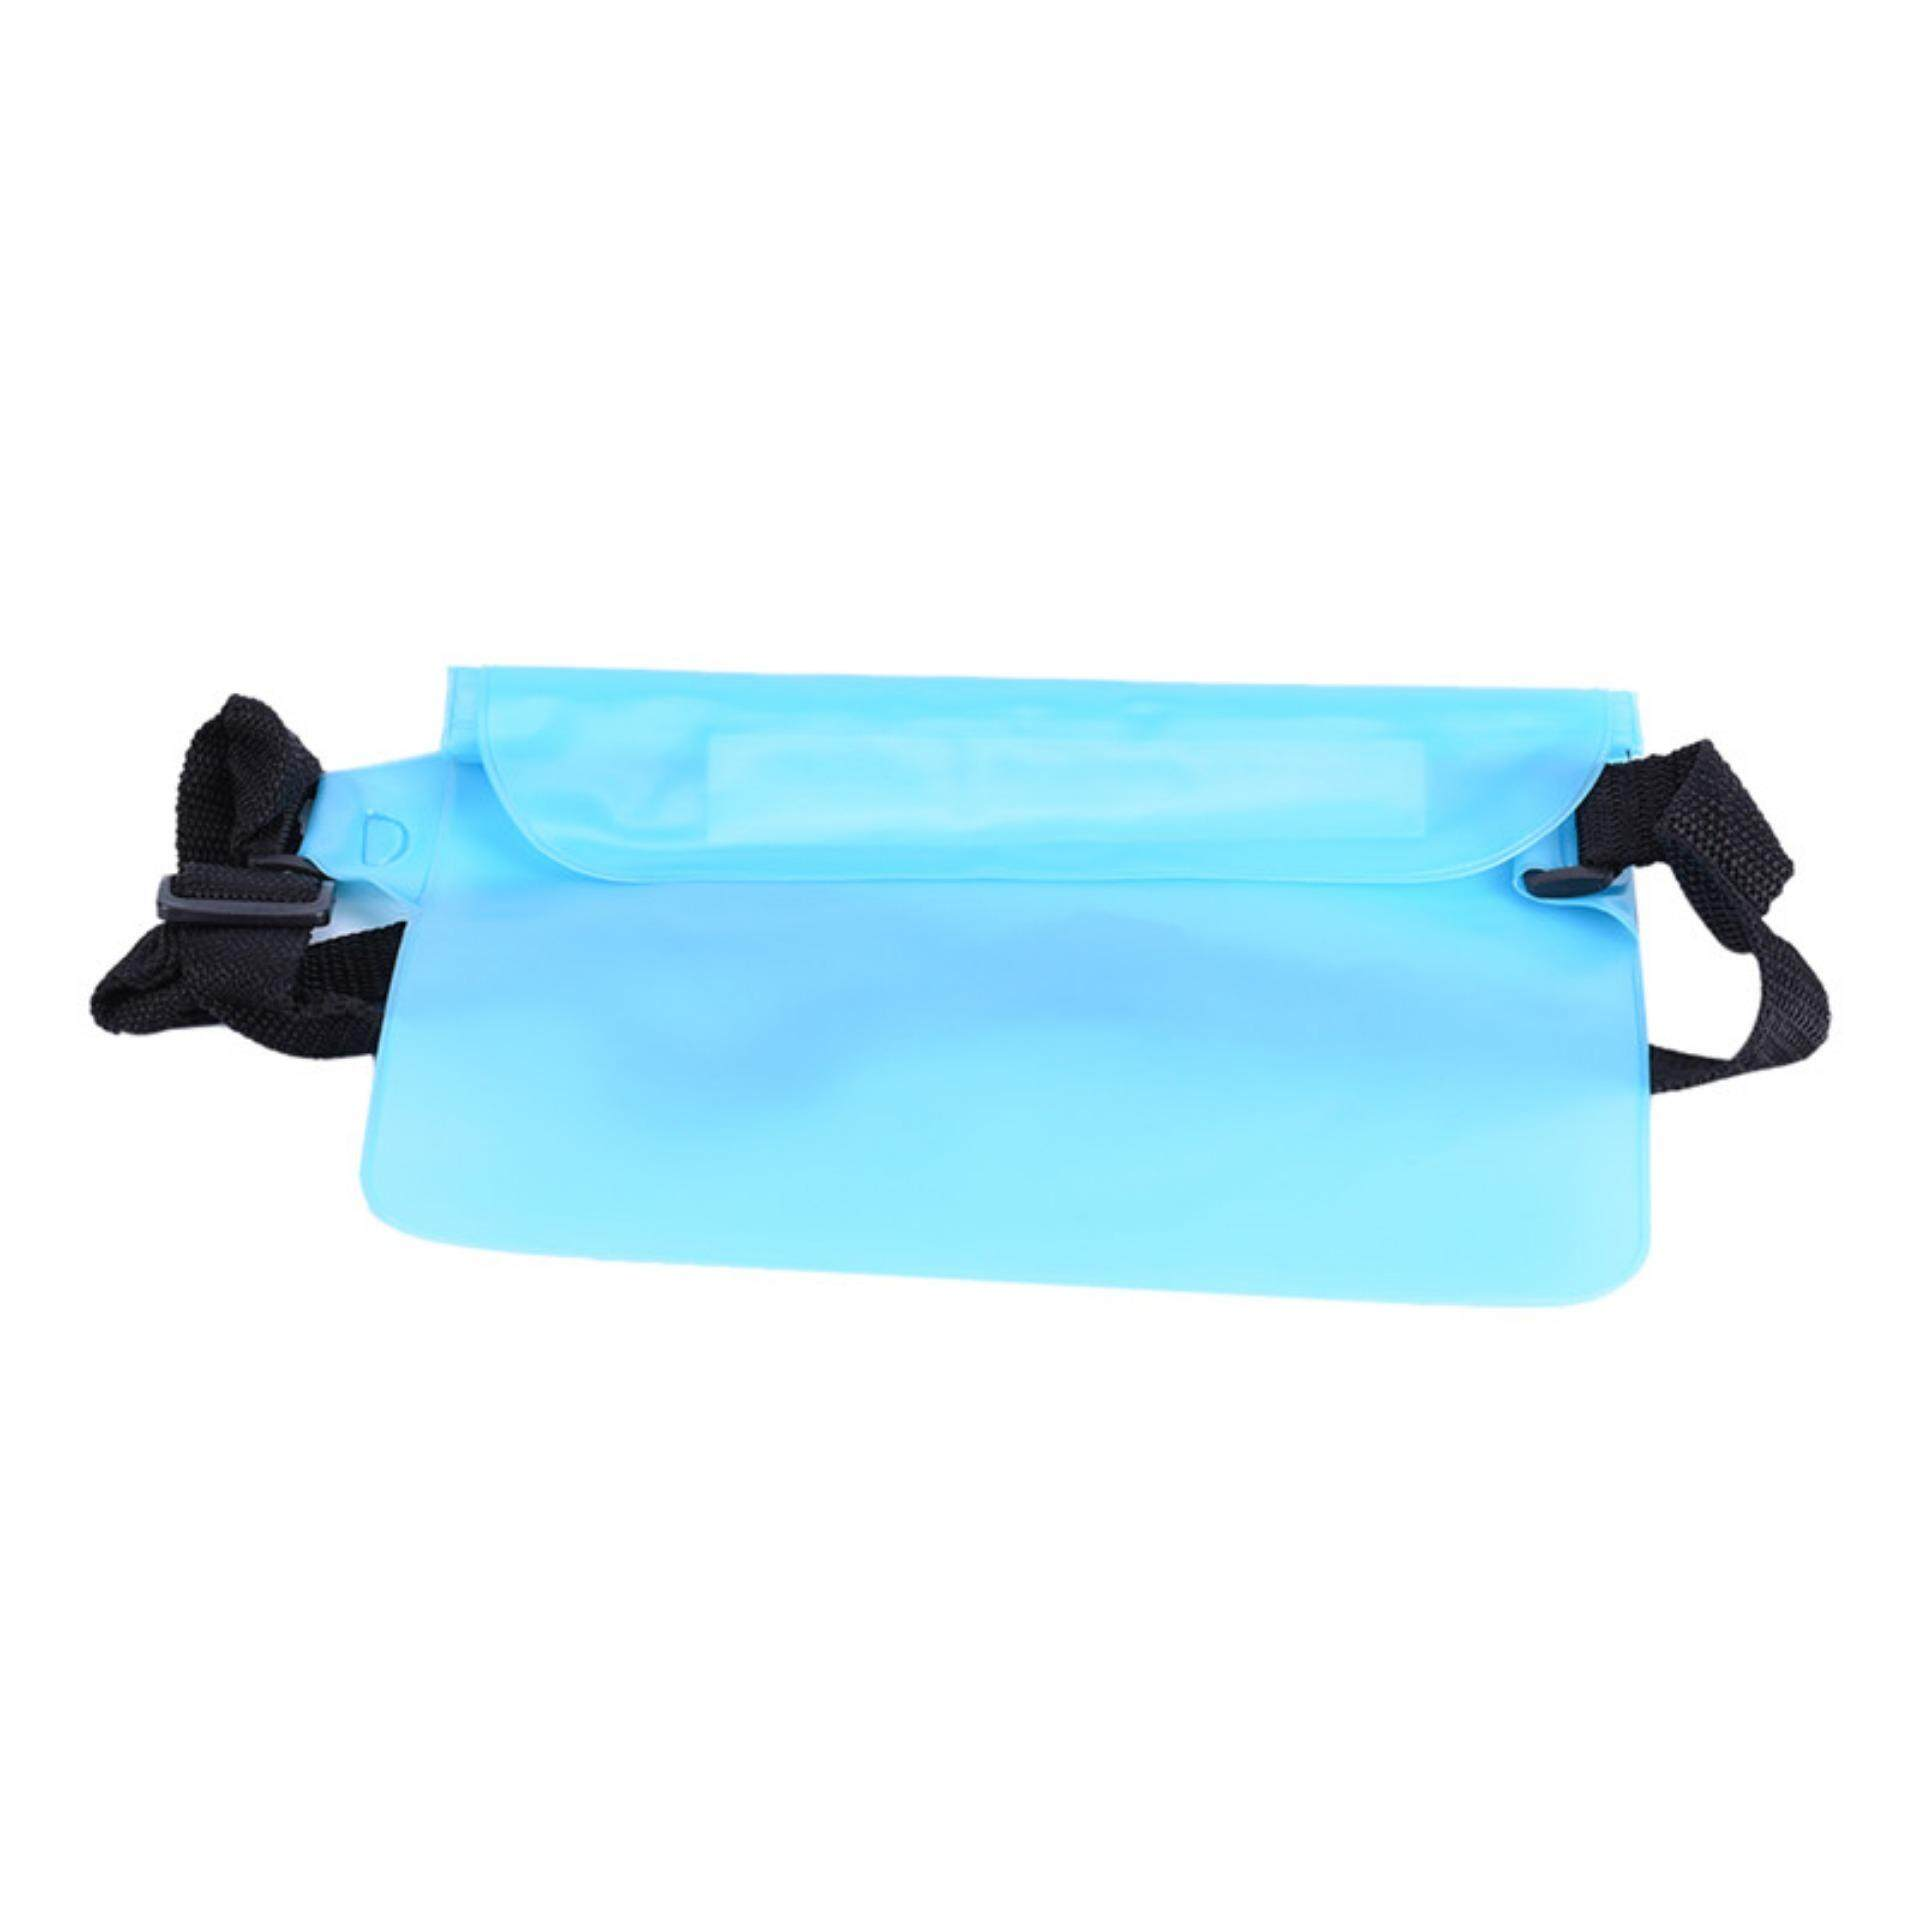 Hình ảnh Rainproof Waterproof Sports Underwater Bag Swim Beach Dry Pouch Waist Light Blue - intl